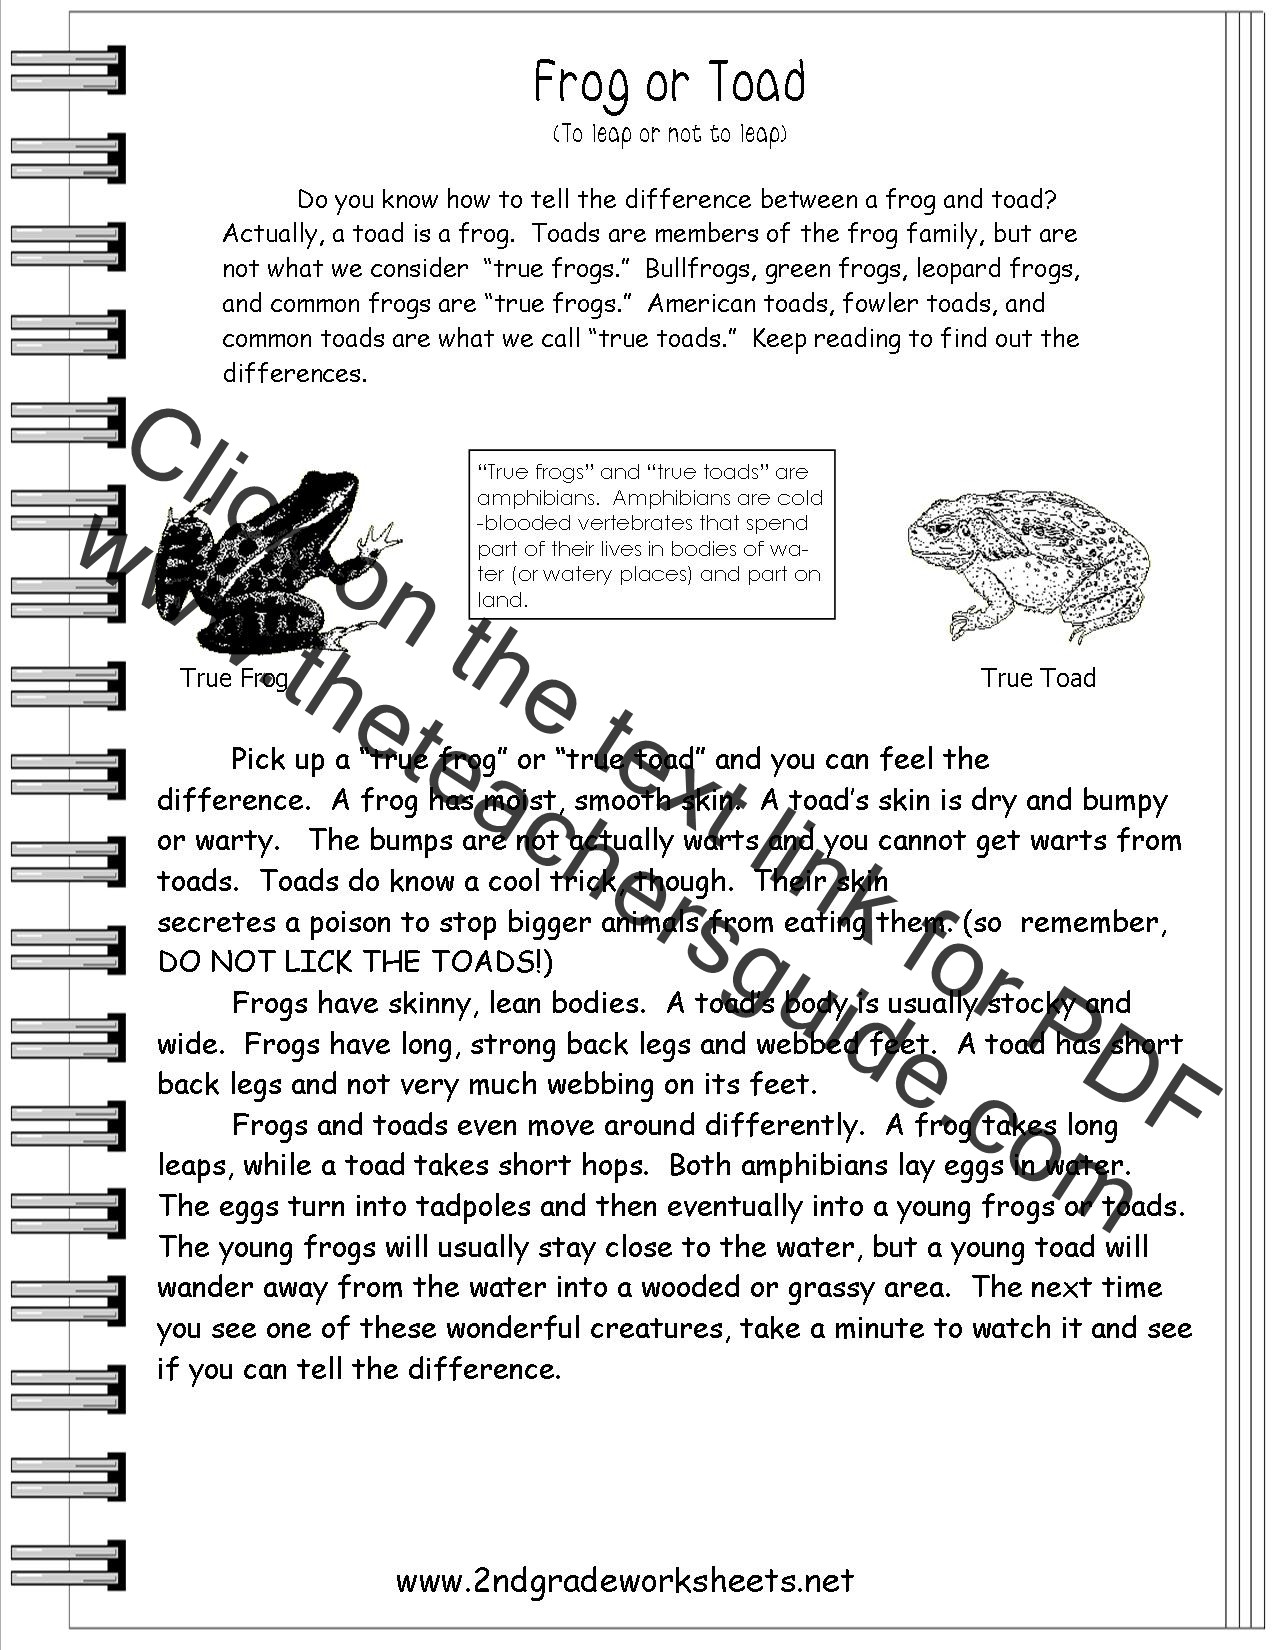 Informational Text Worksheets Middle School 5th Grade Fiction Reading Passages